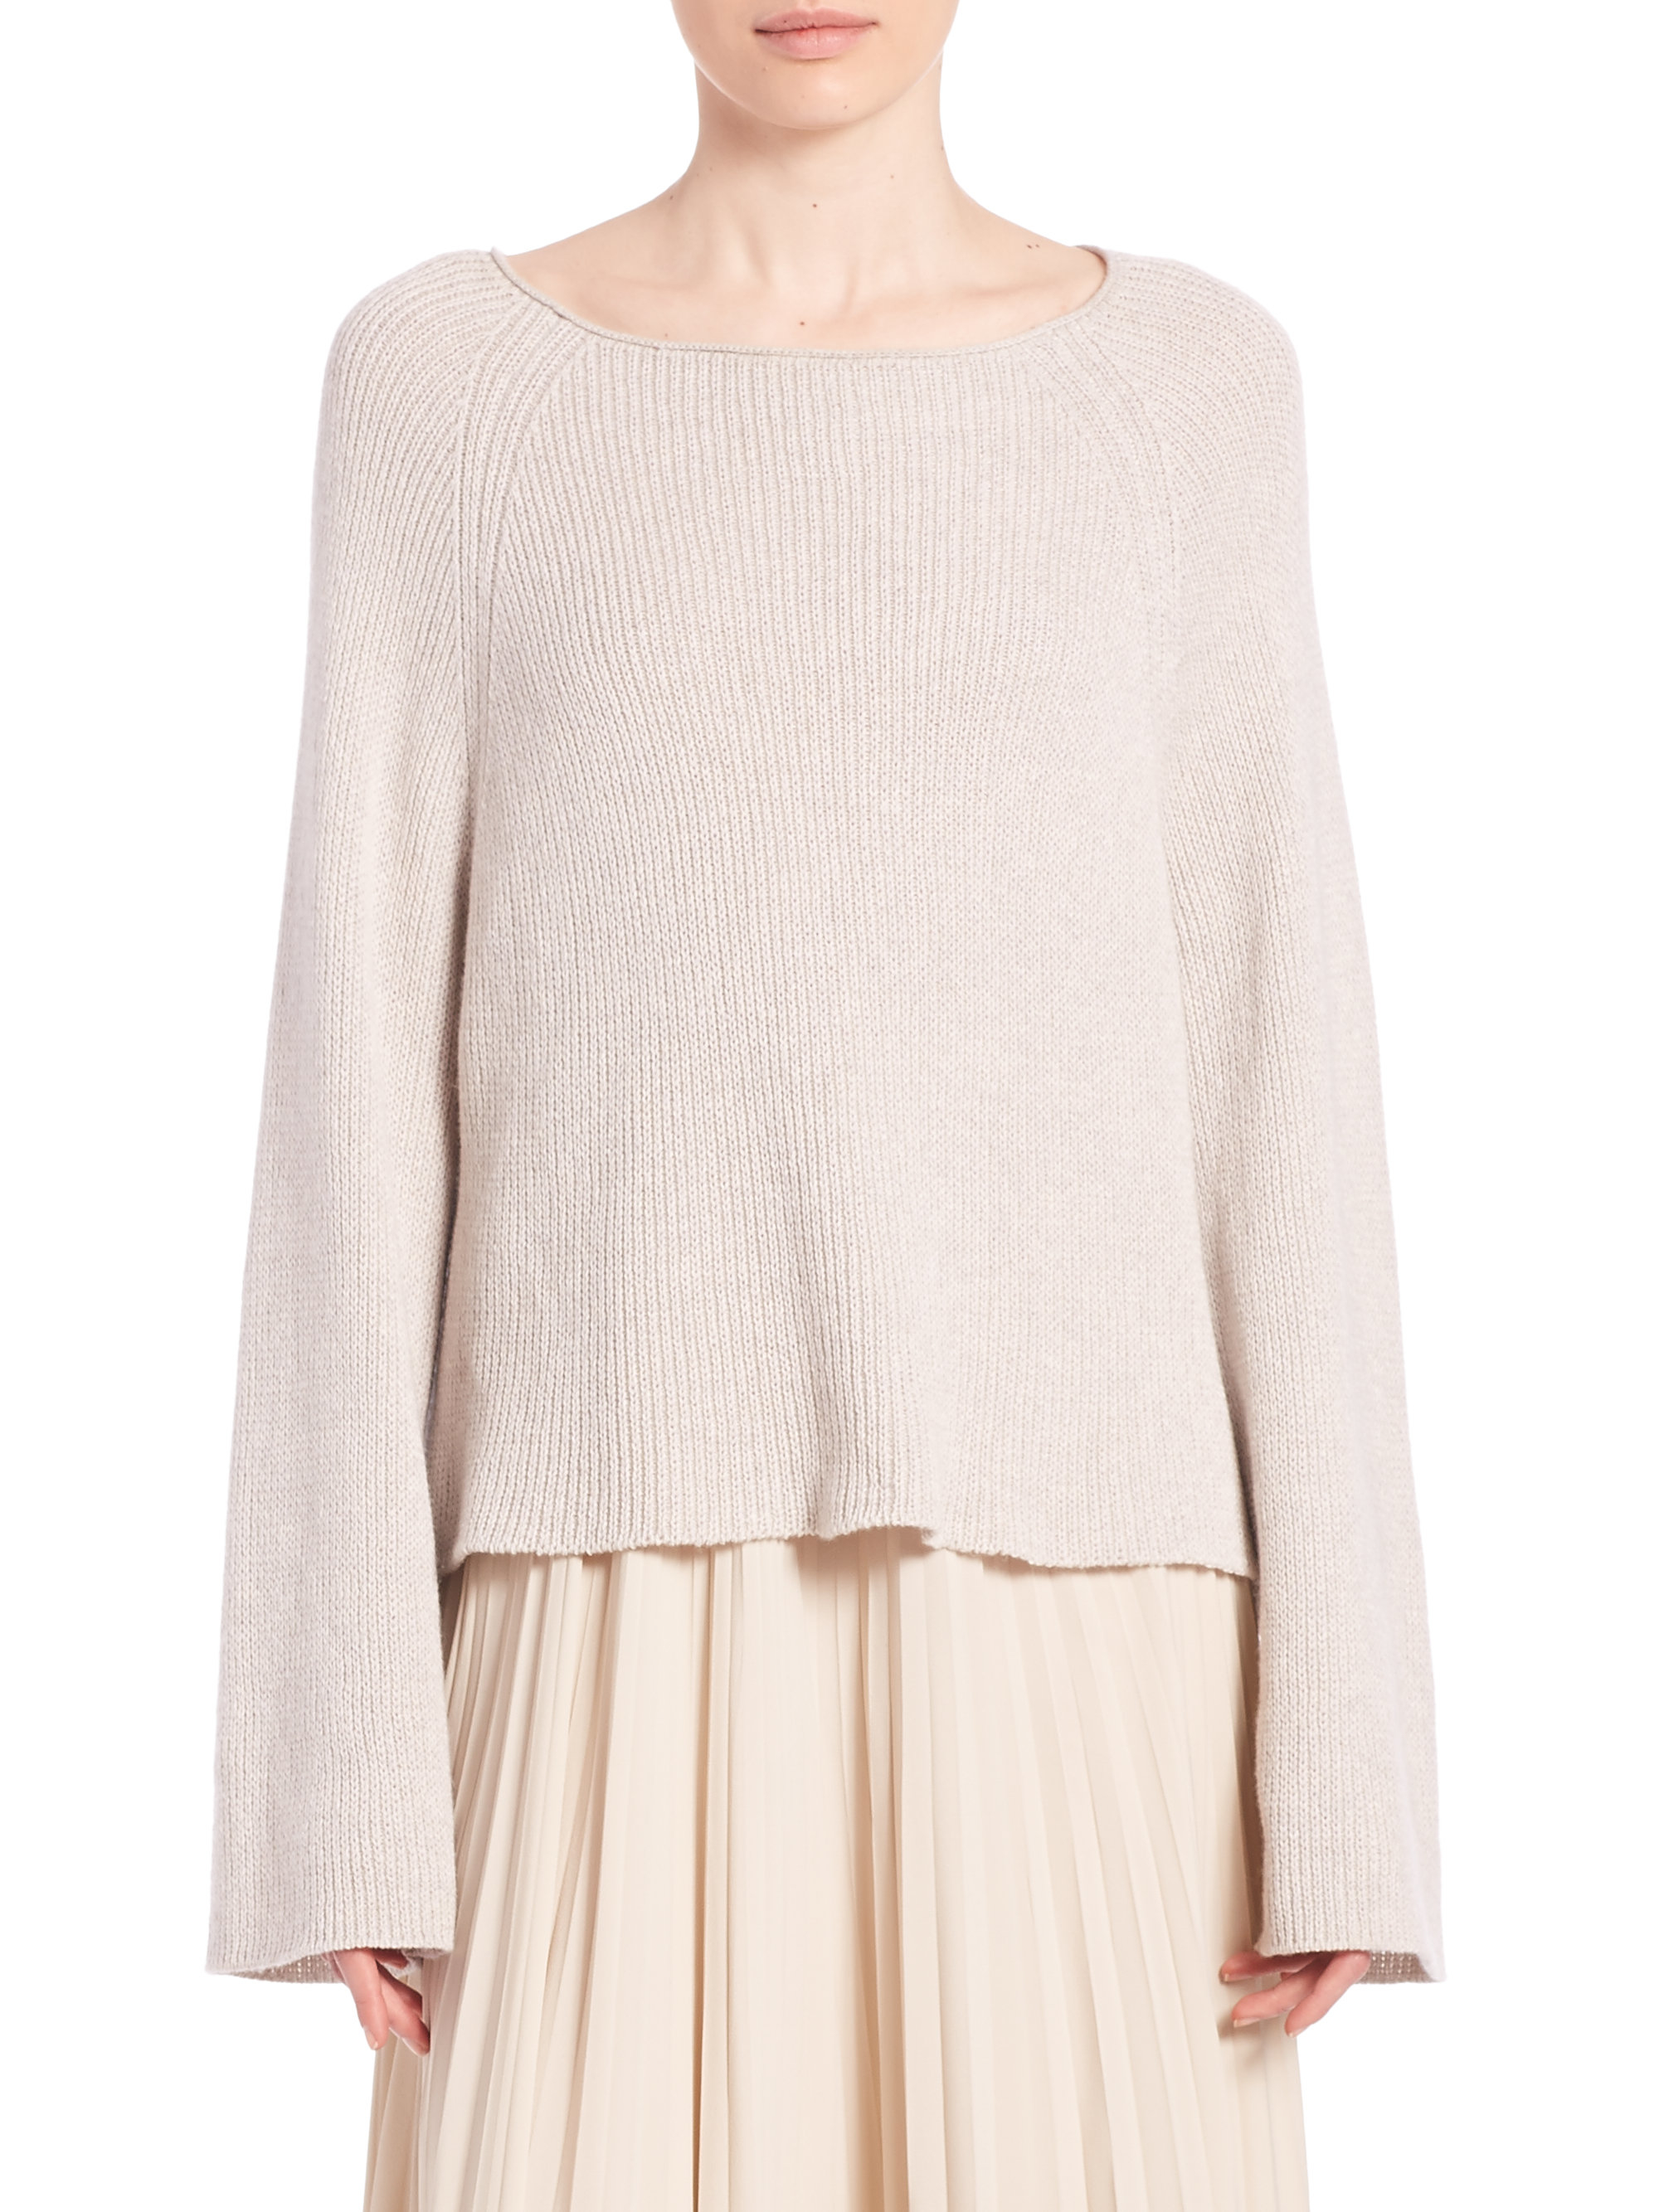 Helmut lang Cotton & Cashmere Pullover in Natural | Lyst